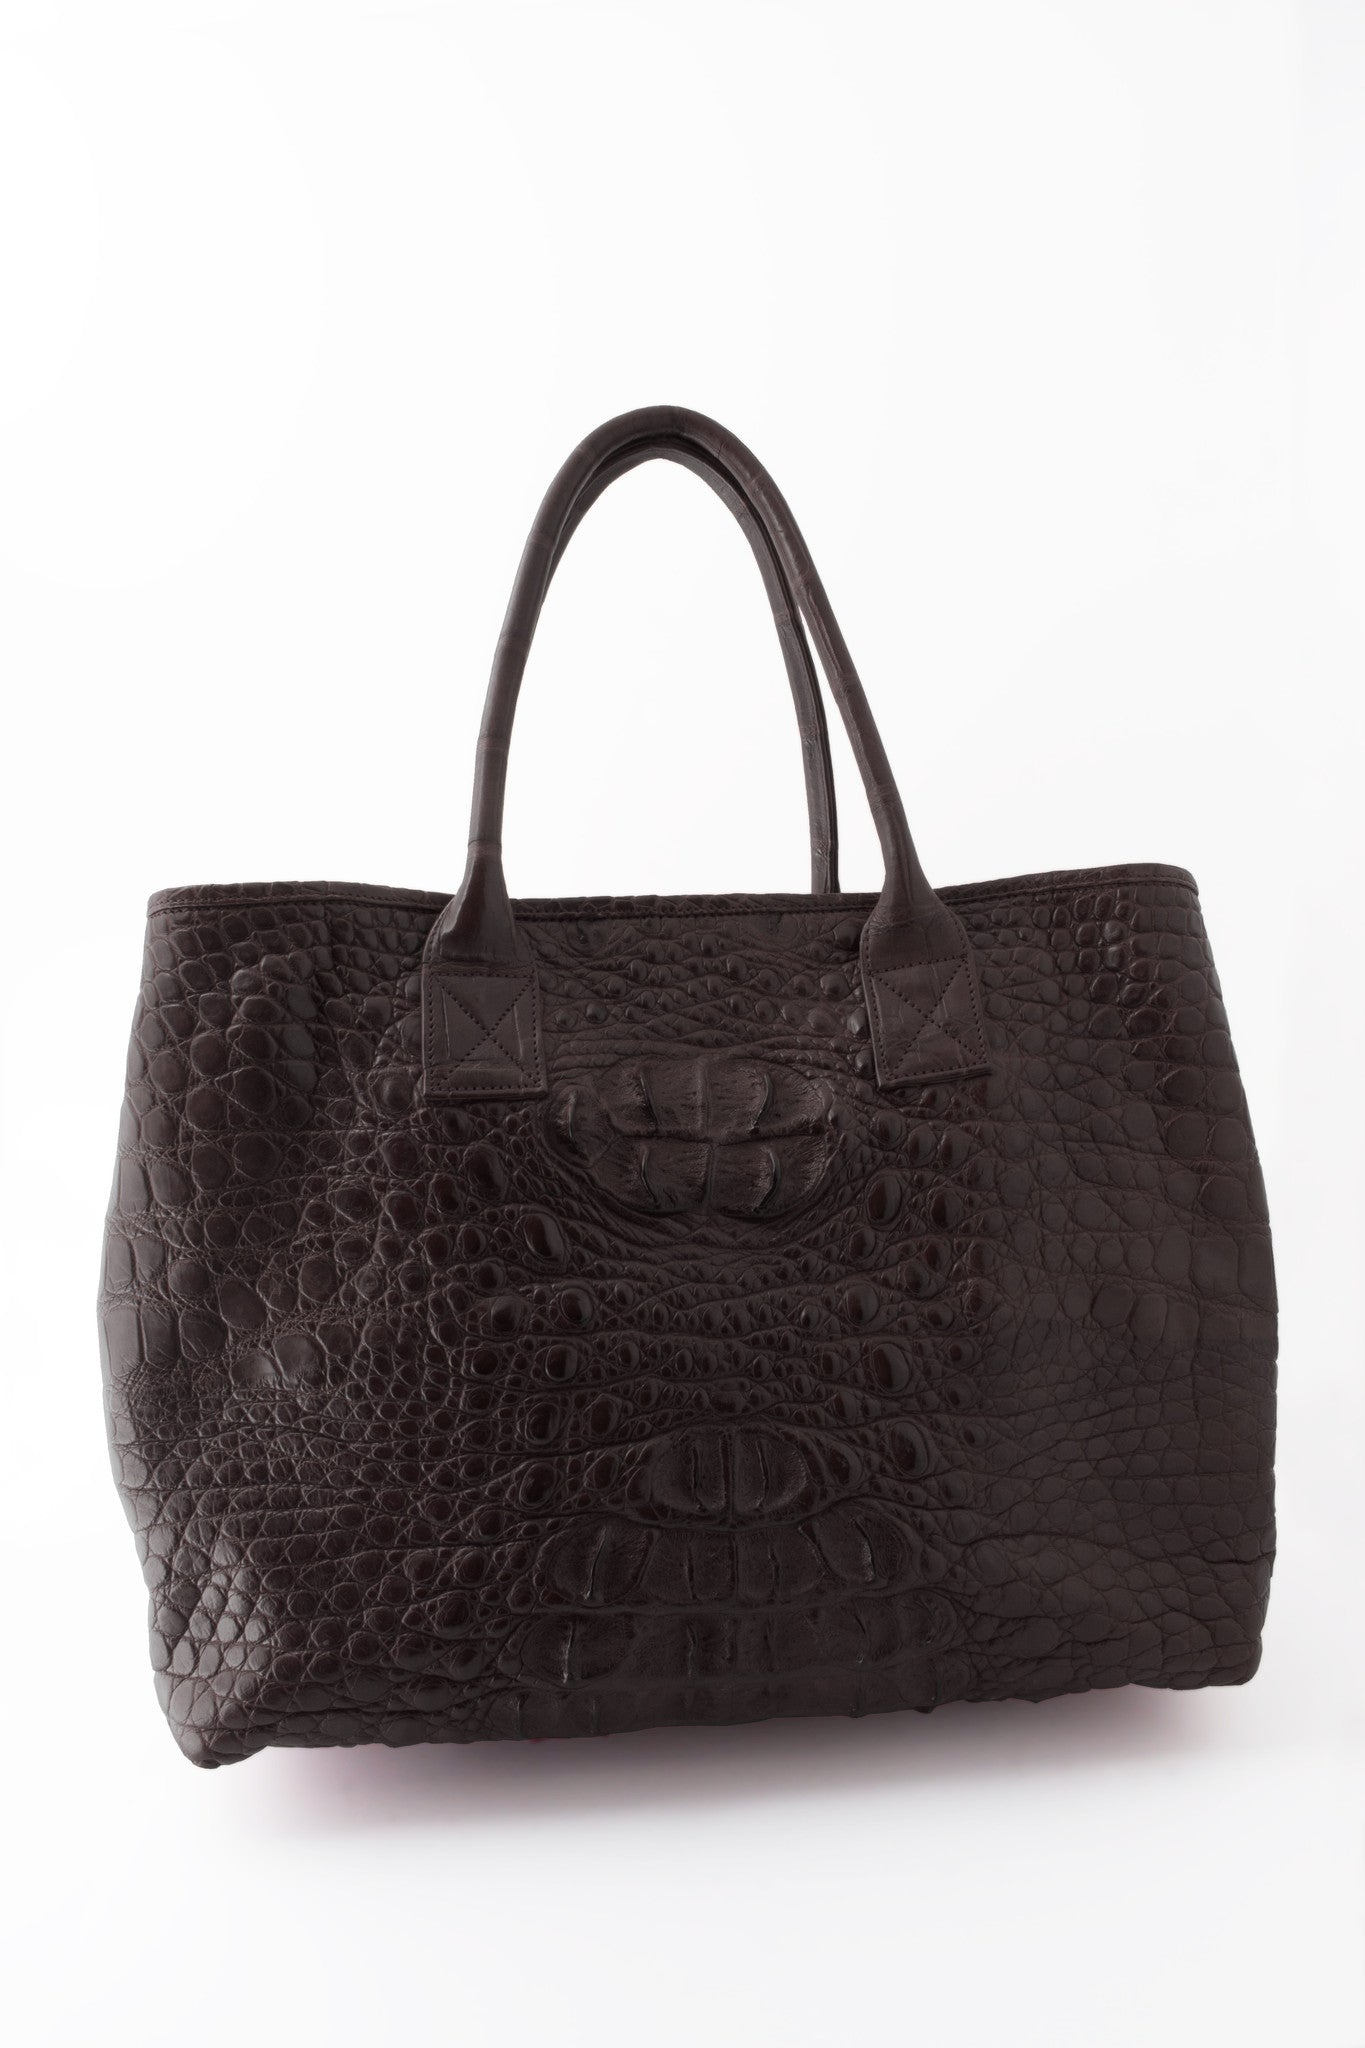 Rolls Royce Medium African Crocodile Bag - Charcoal Gray